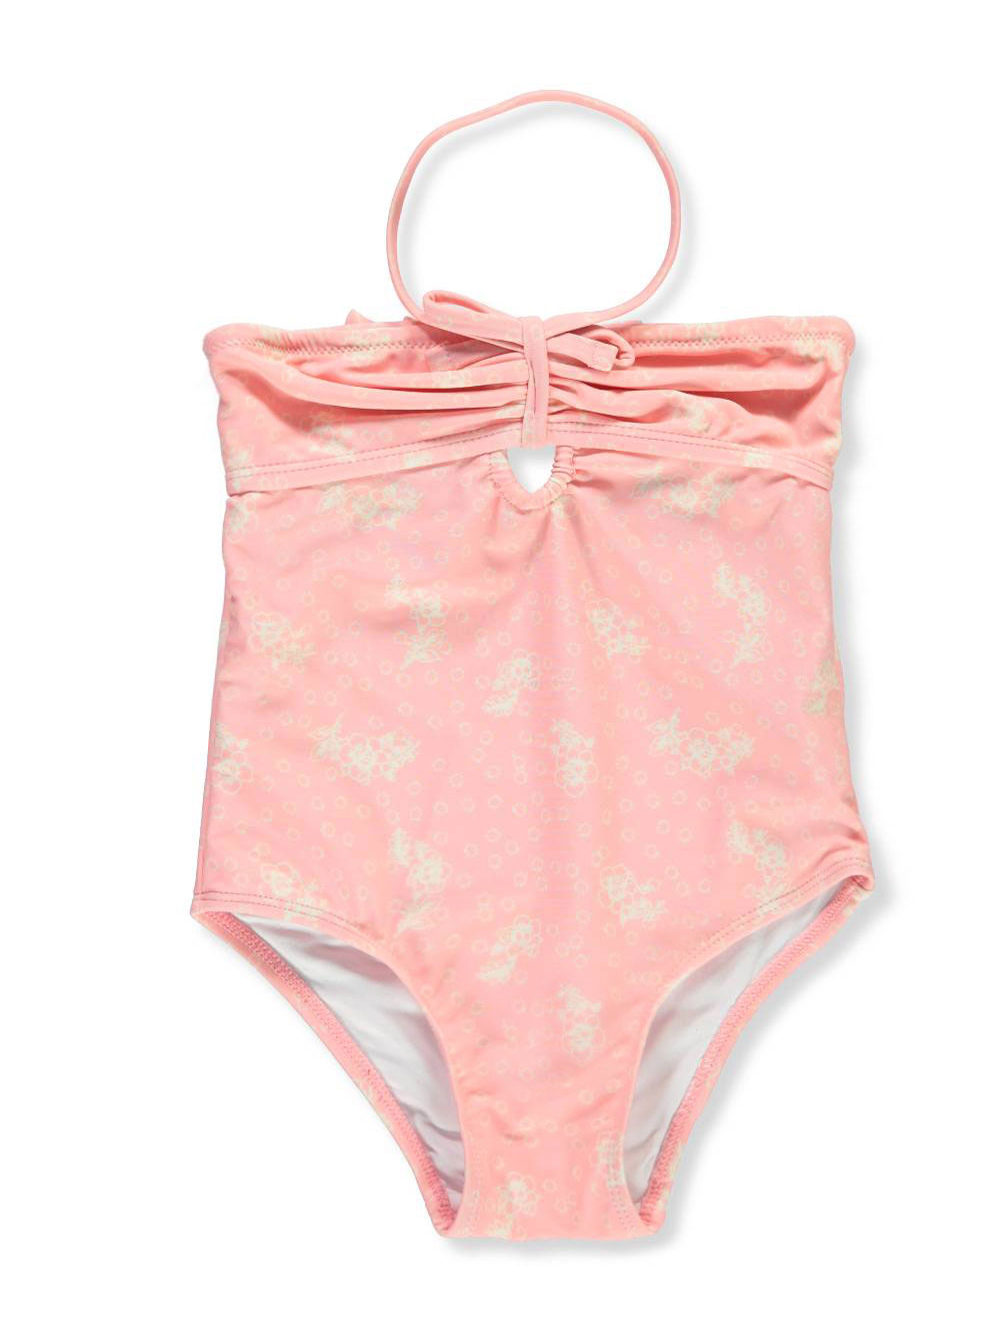 9f043b428bd78 Baby Girls' 1-Piece Swimsuit by Jessica Simpson in Blossom from Cookie's  Kids